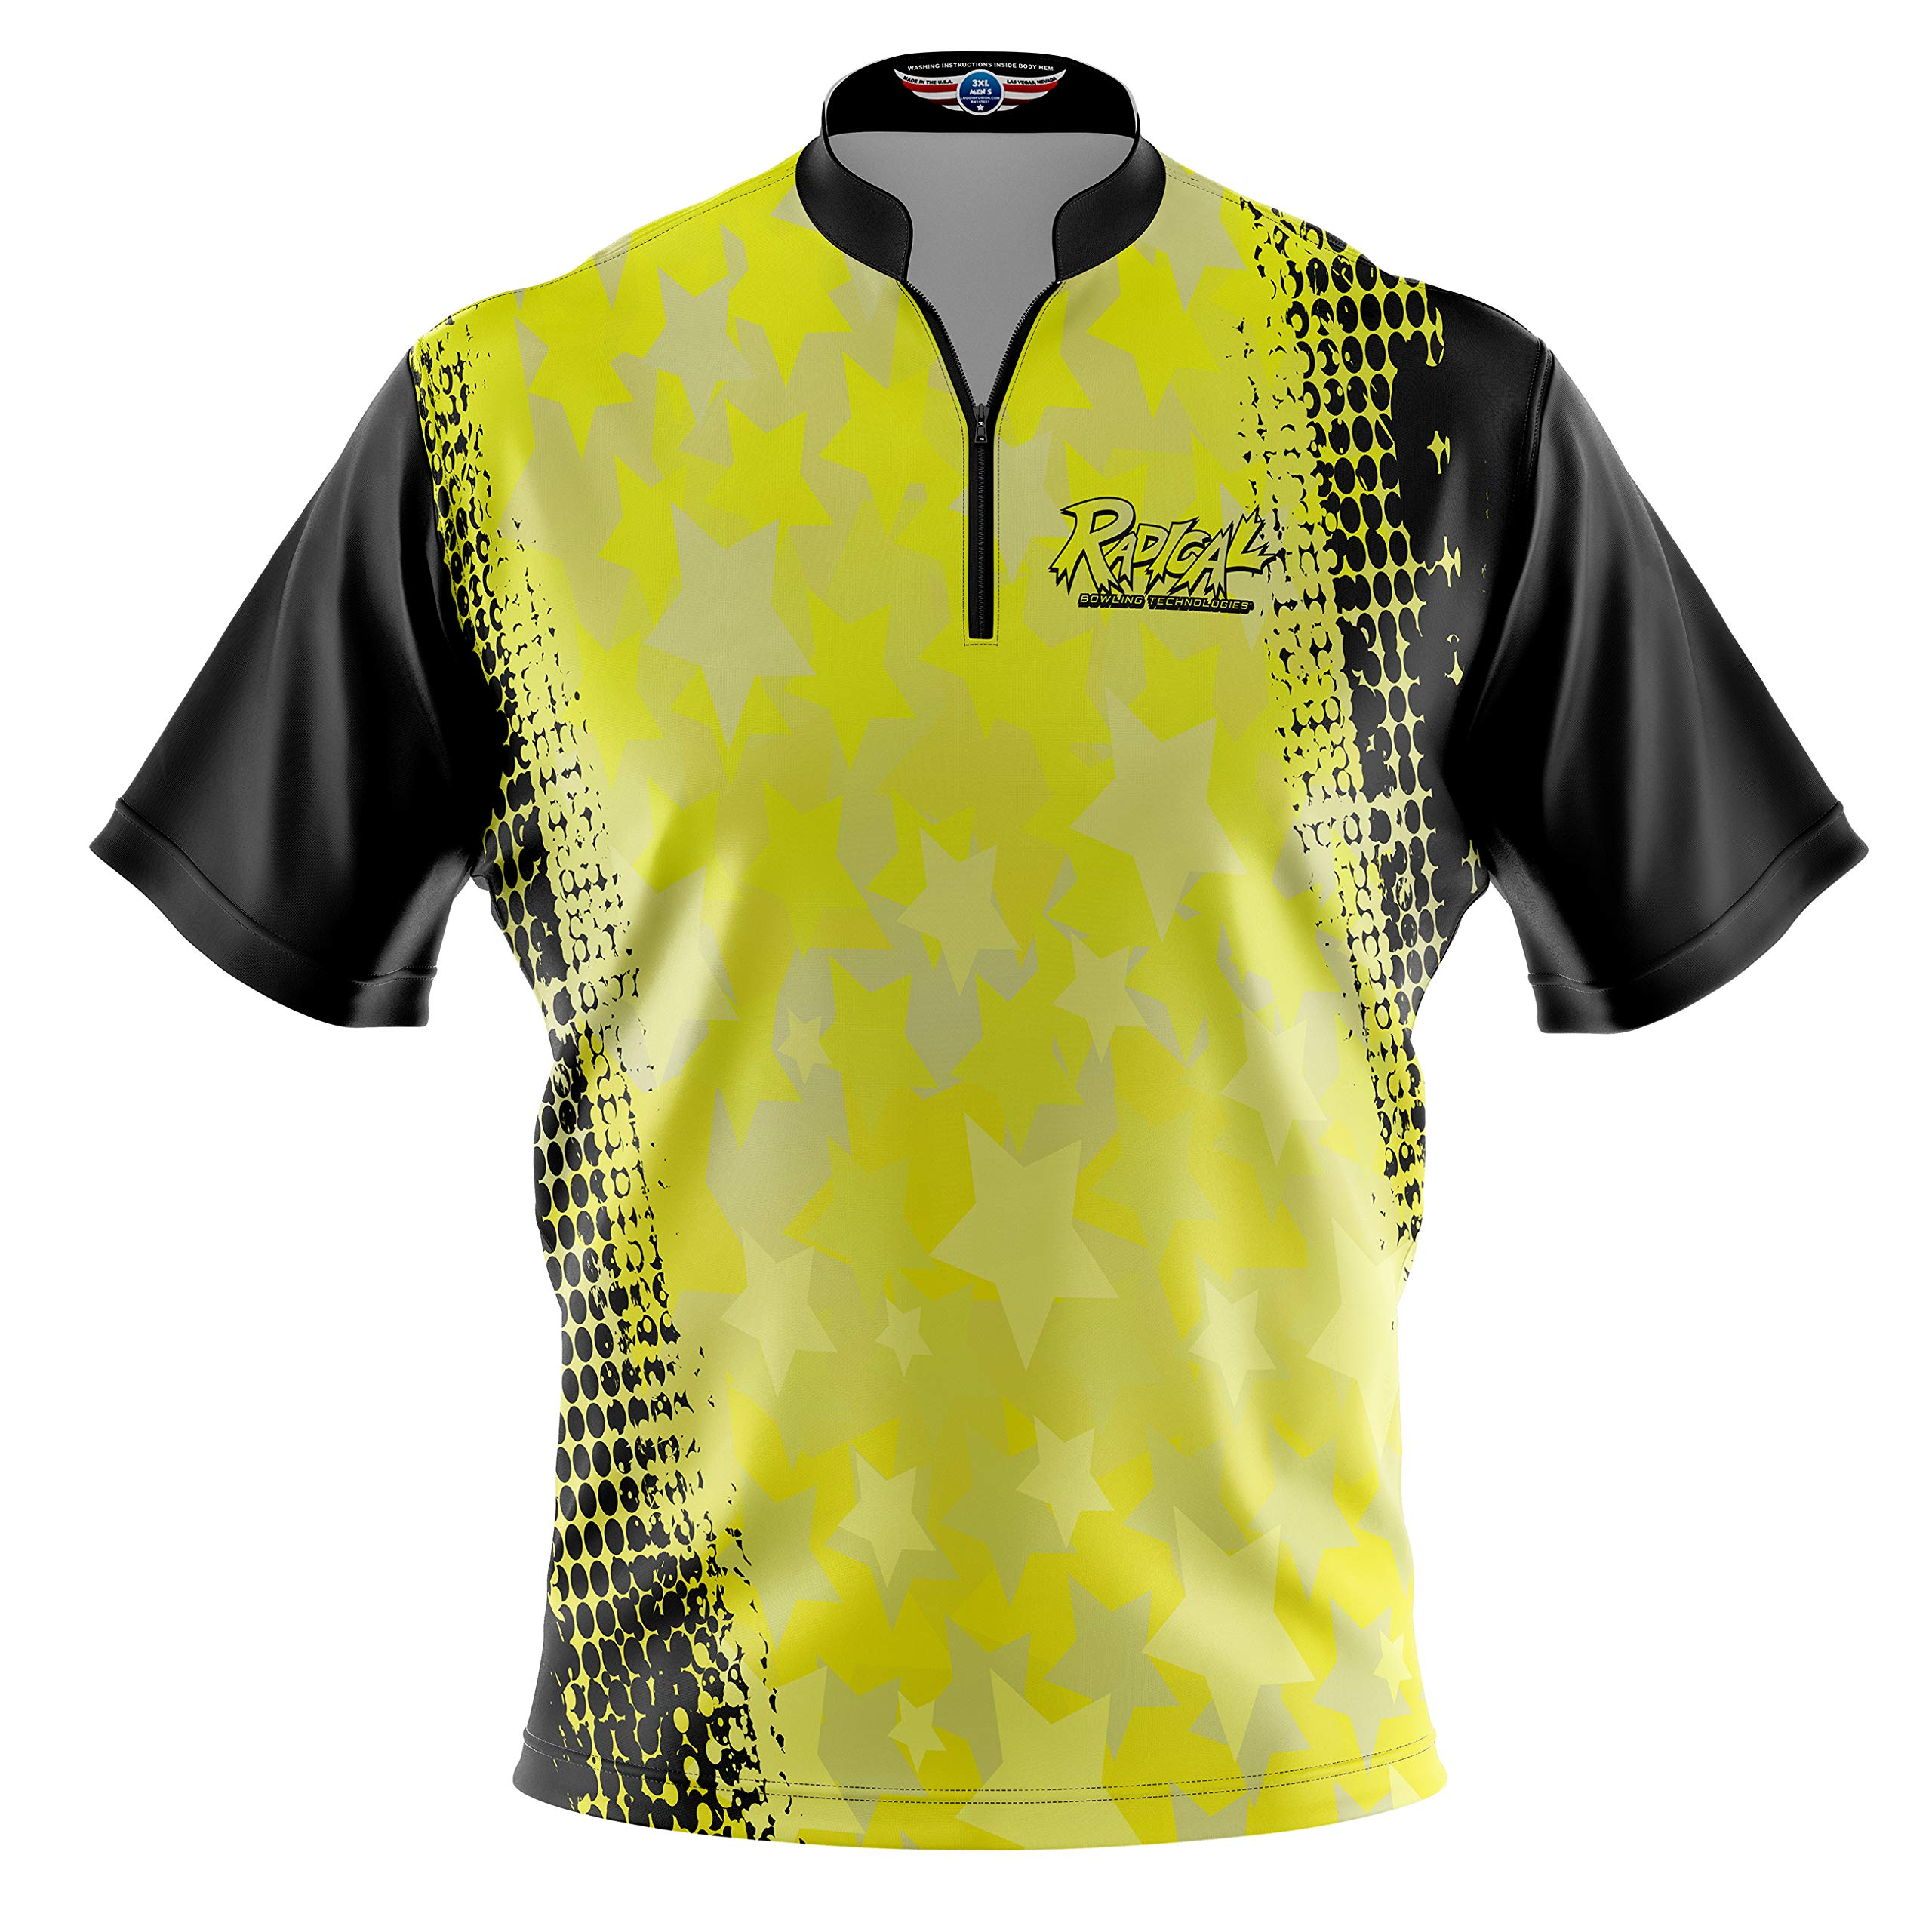 Logo Infusion Bowling Dye-Sublimated Jersey (Sash Collar) - Radical Style 0338 - Sizes S-3XL (L) Yellow Black by Logo Infusion